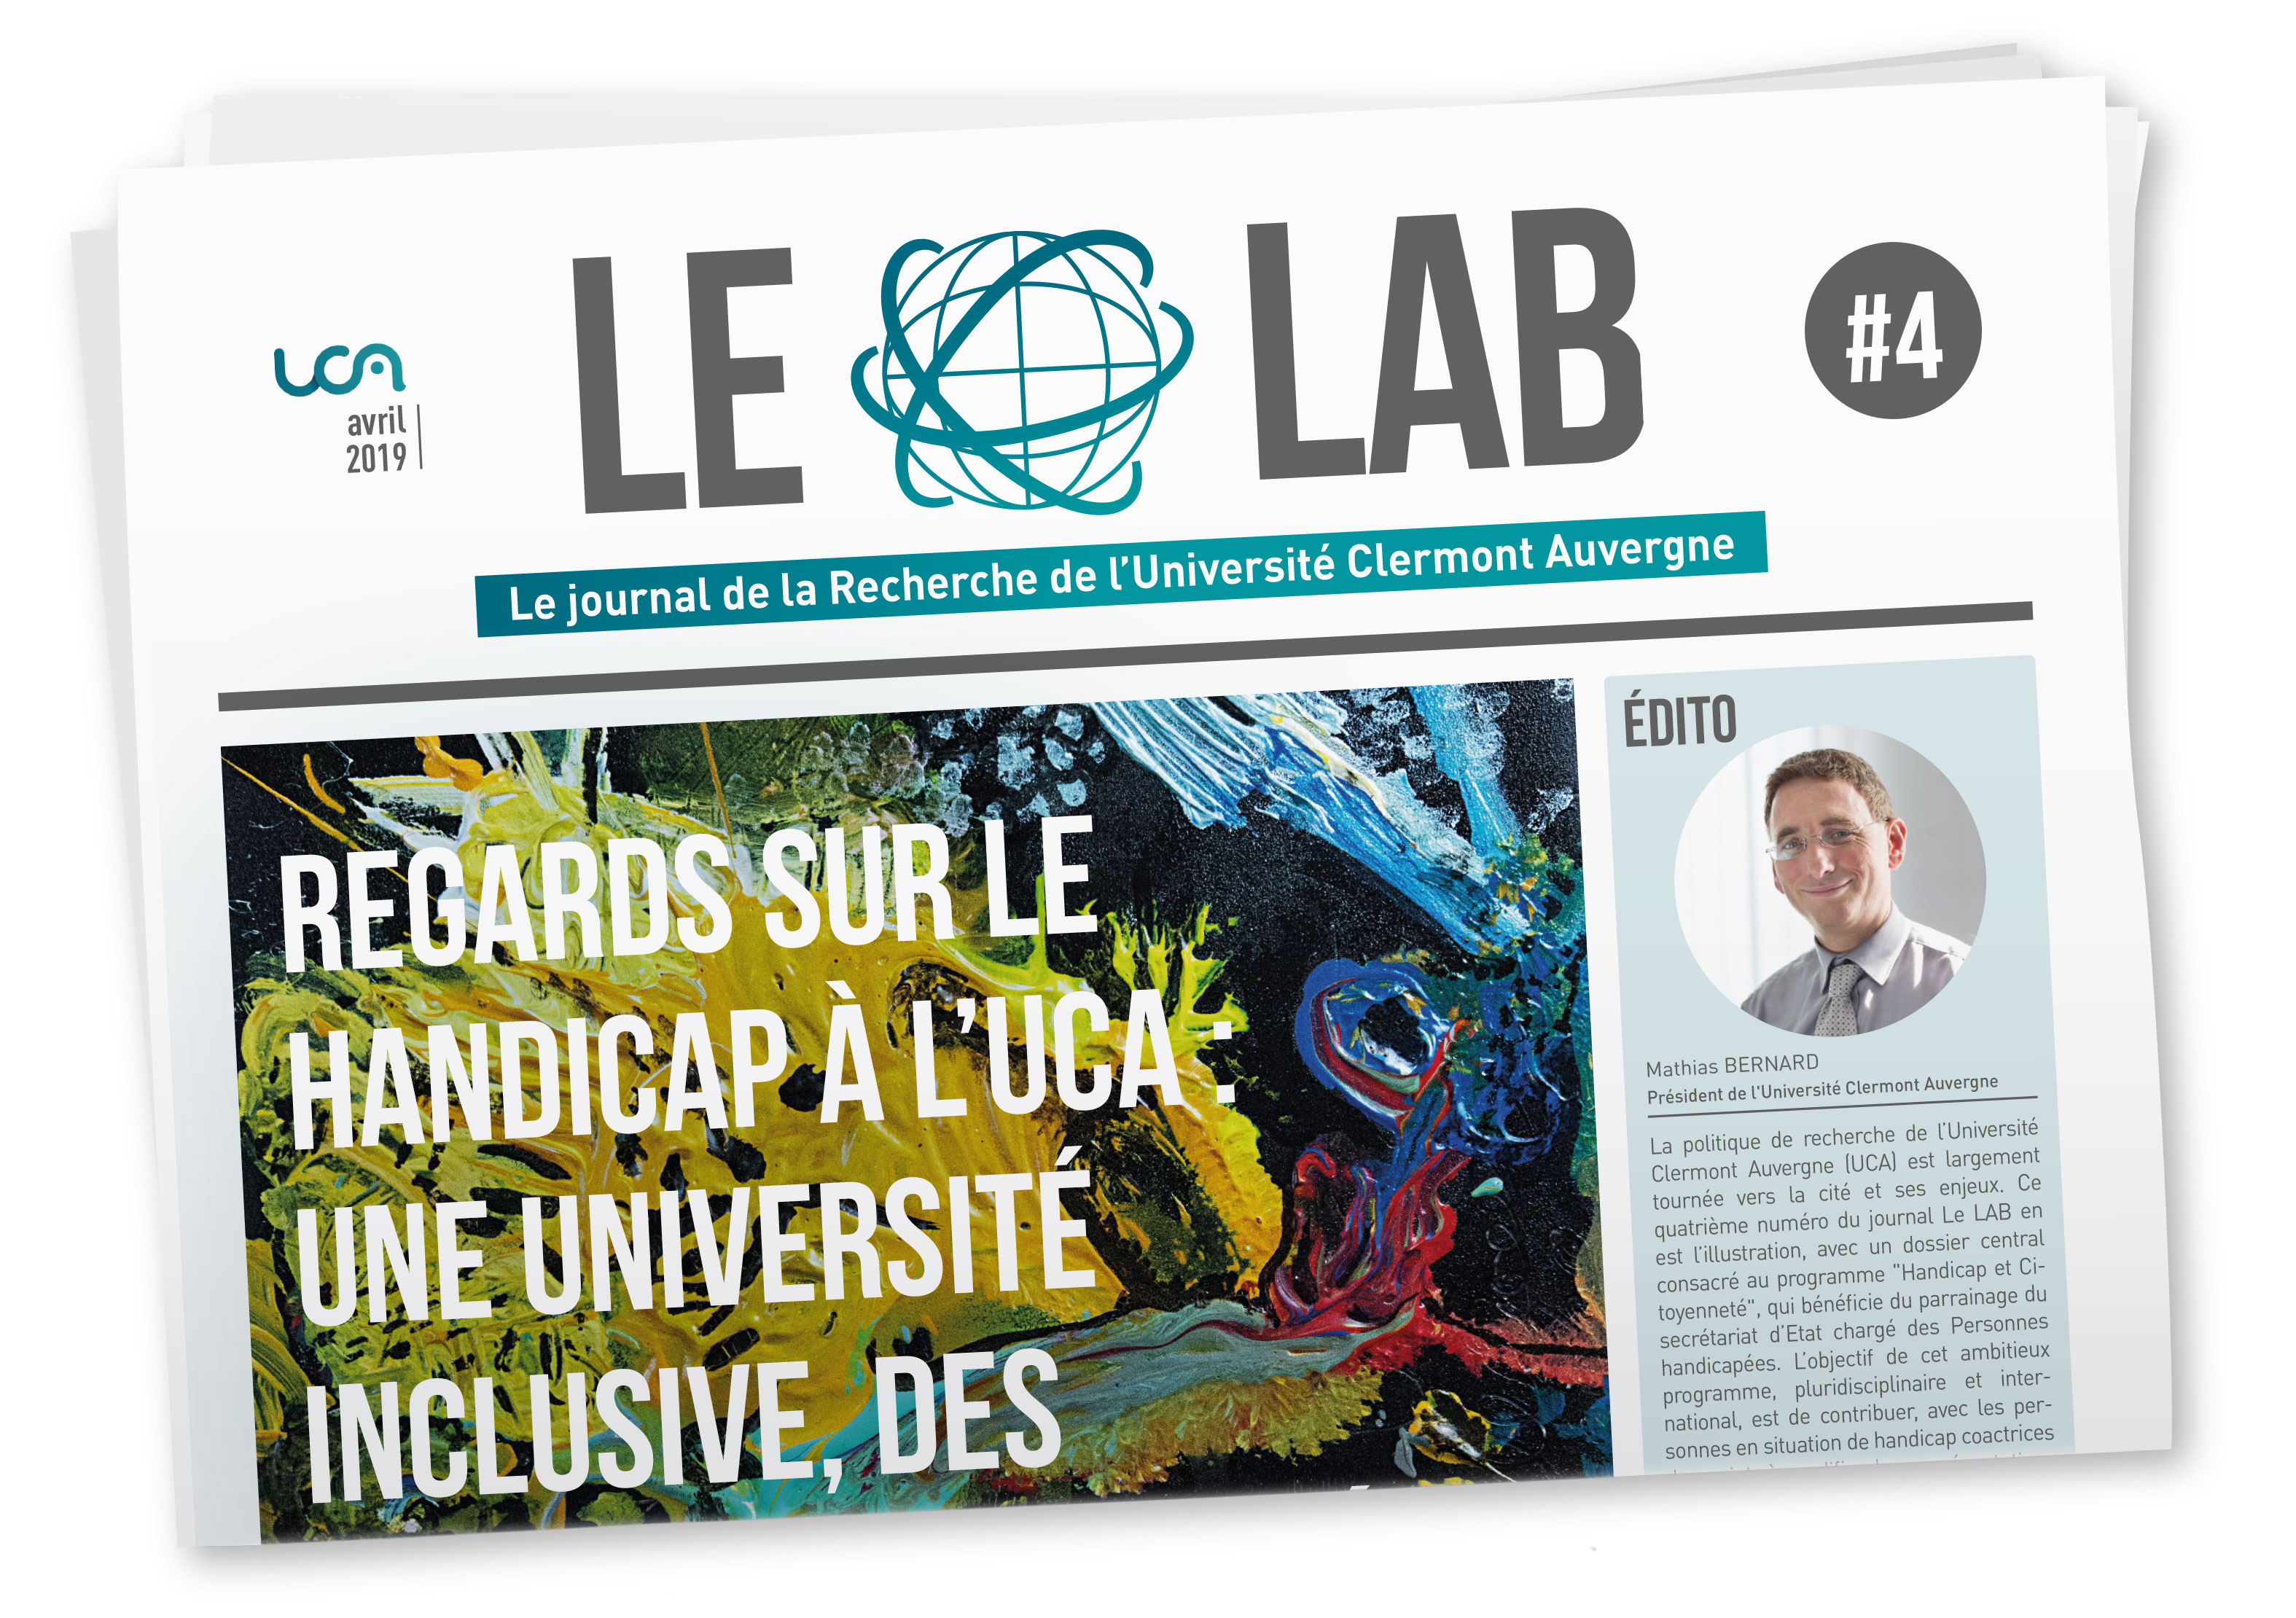 Couverture LE LAB avril 2019